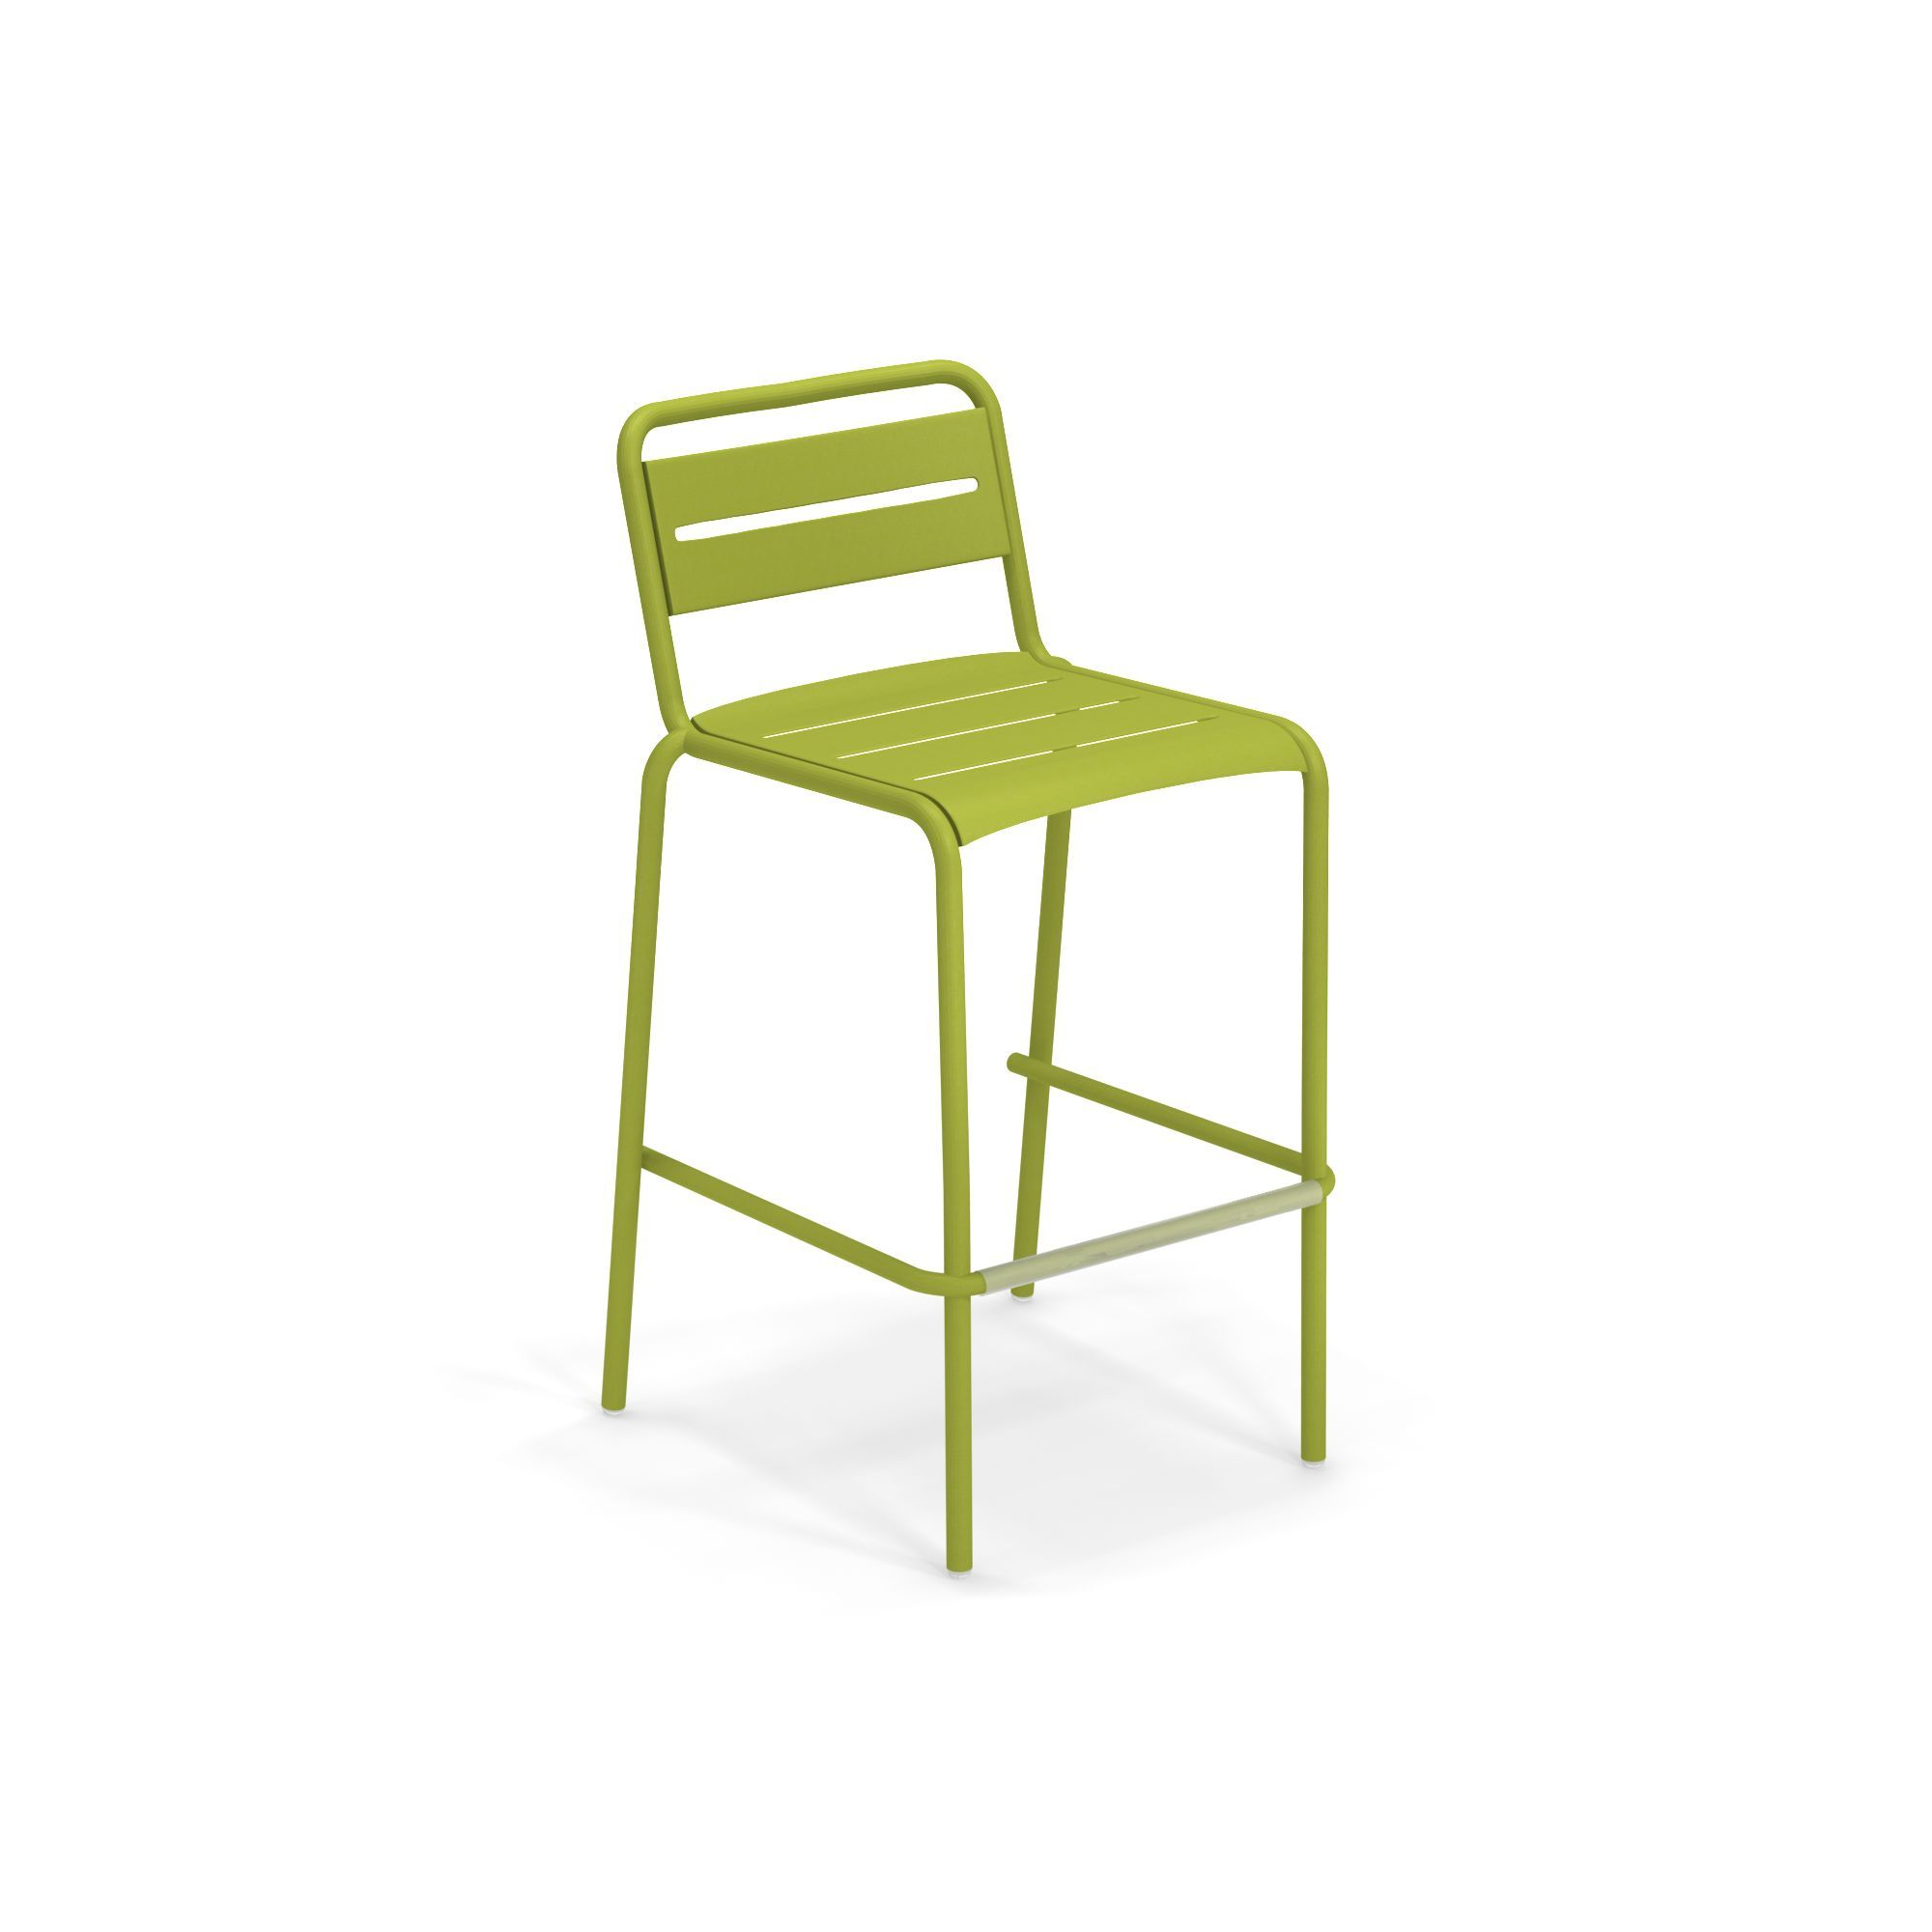 emuamericas, llc 164-60 bar stool, stacking, outdoor